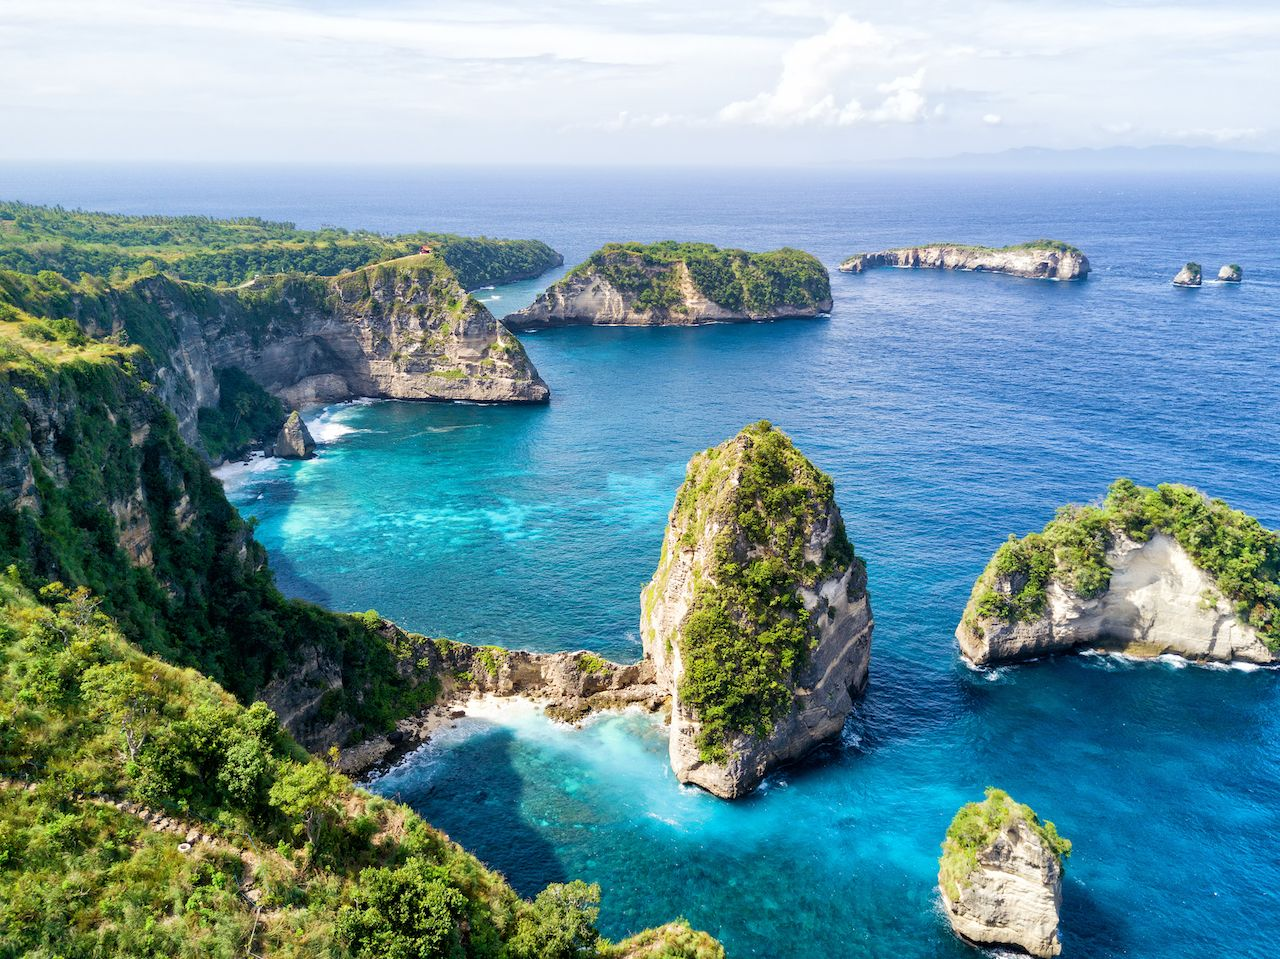 View from the Atuh Rija Lima shrine on Nusa Penida Island near Bali, Indonesia